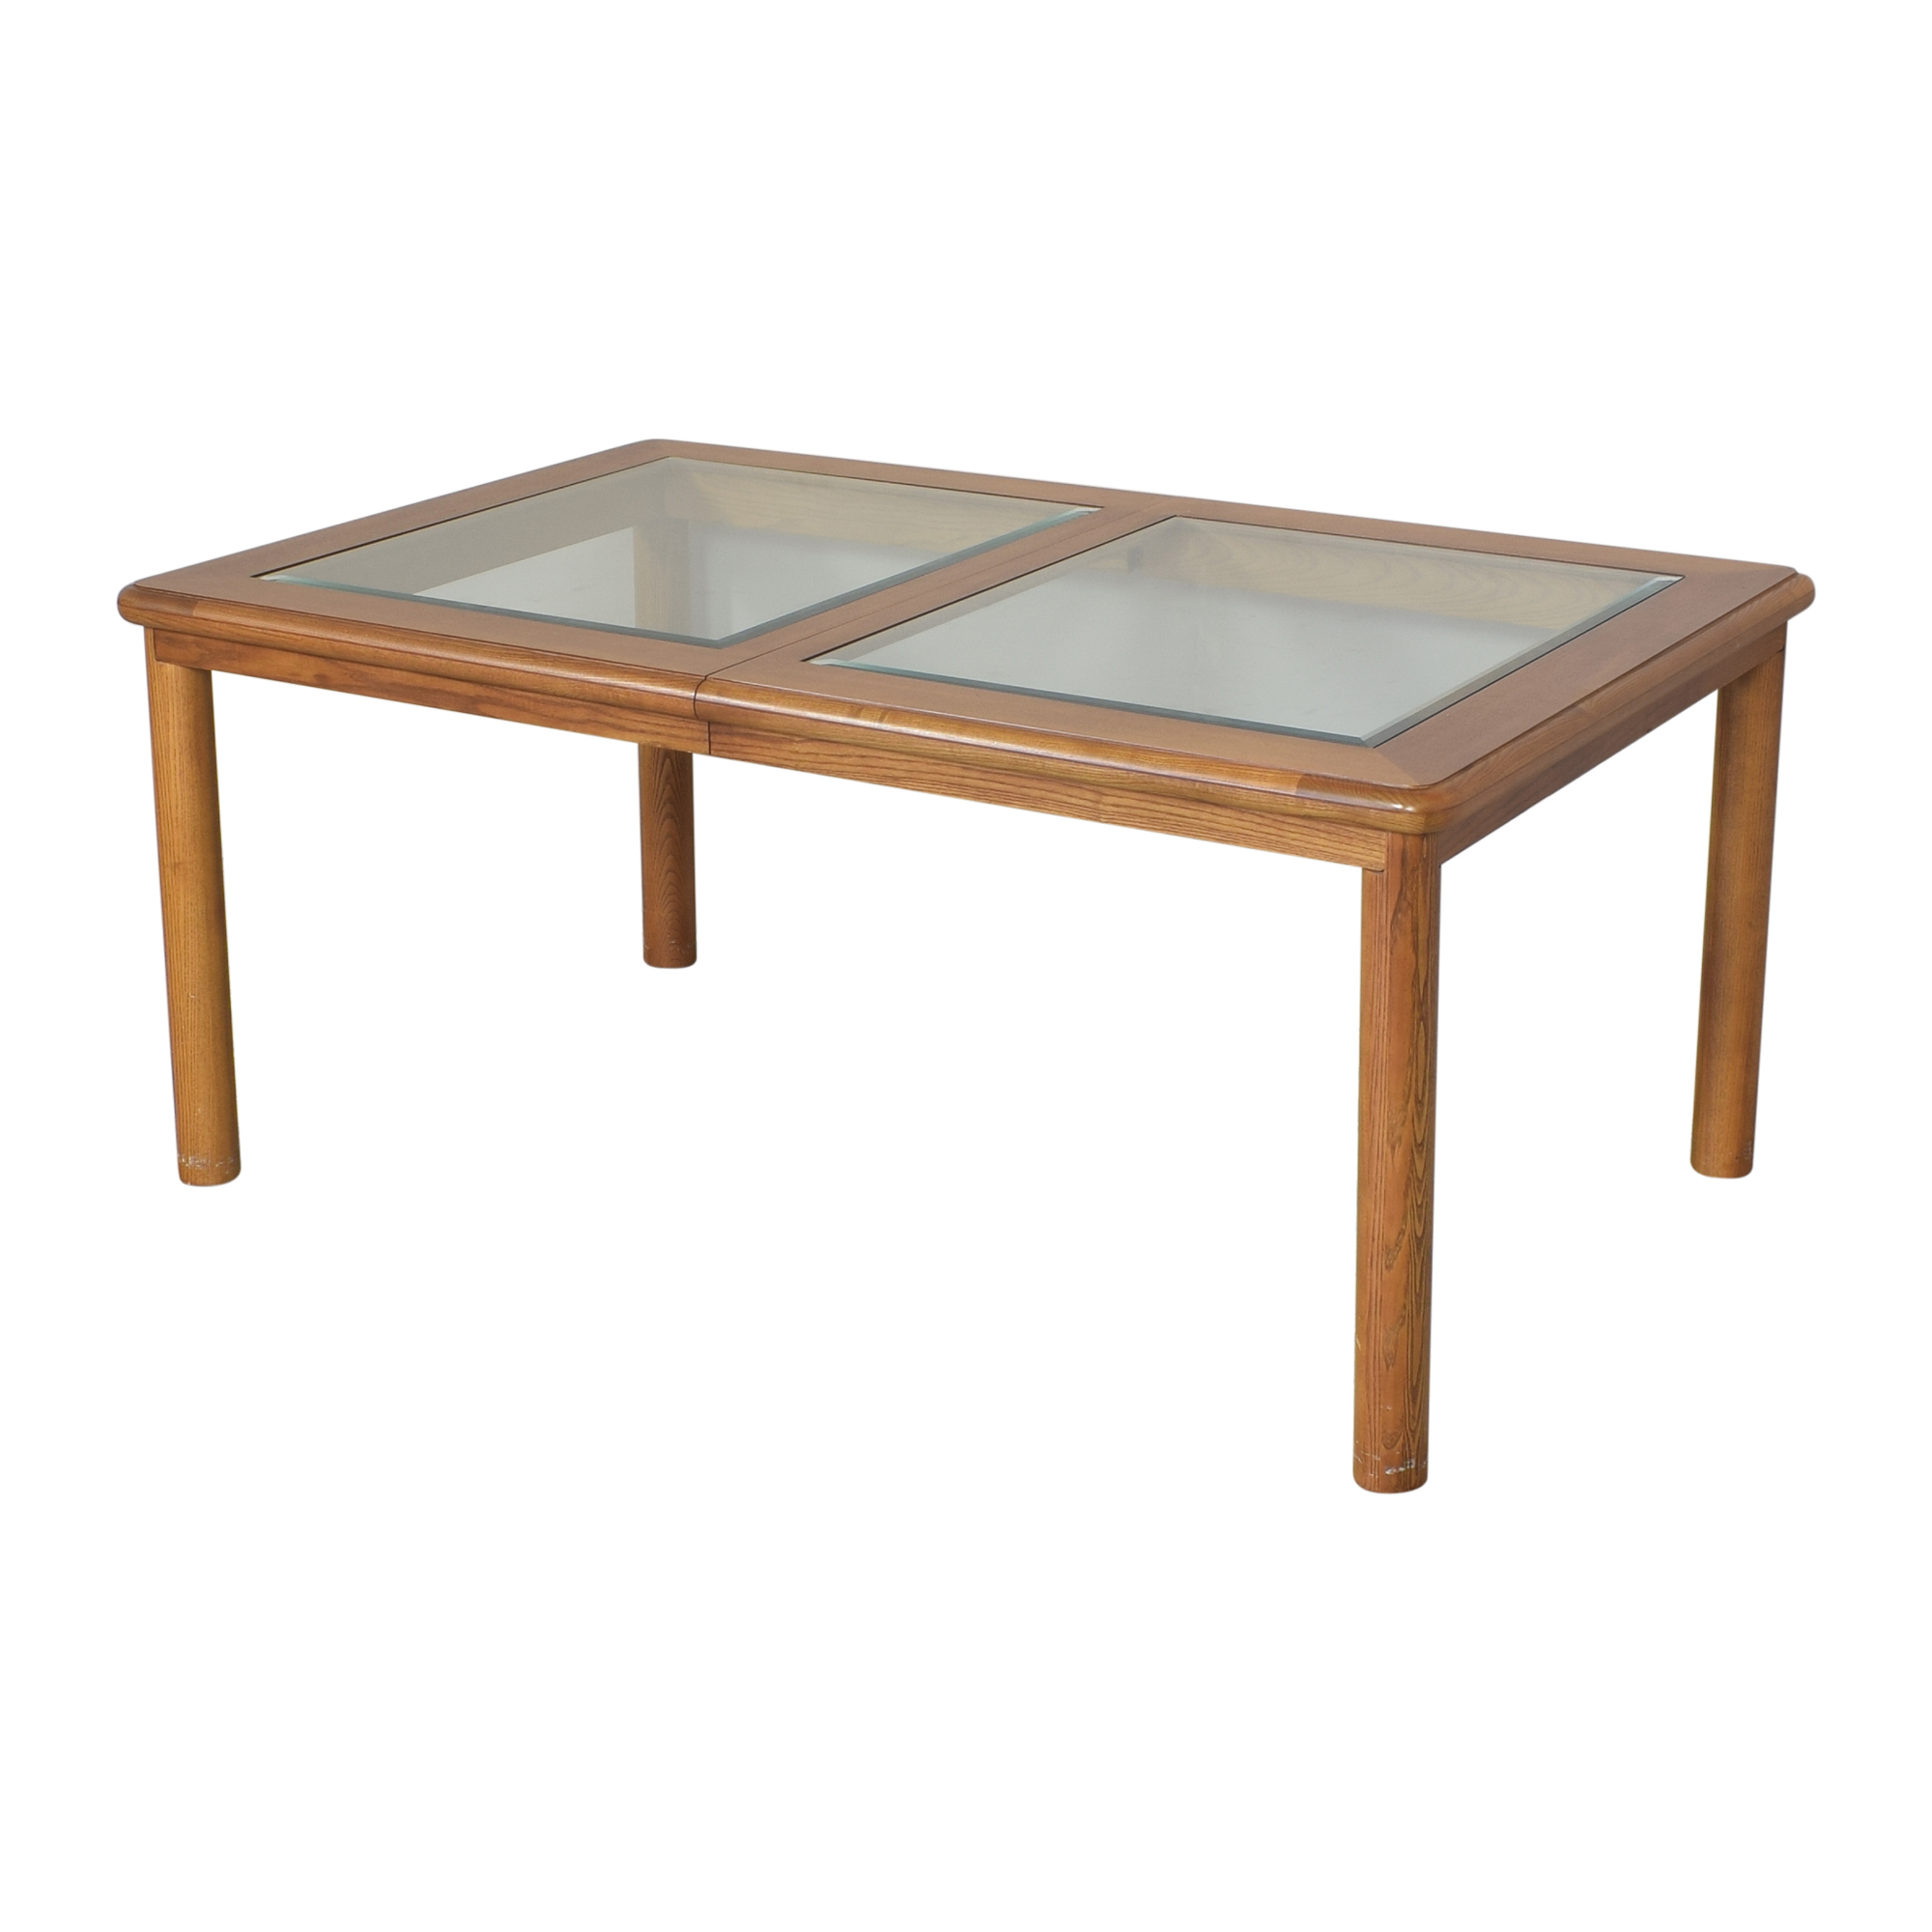 Thomasville Thomasville Extendable Dining Table Dinner Tables